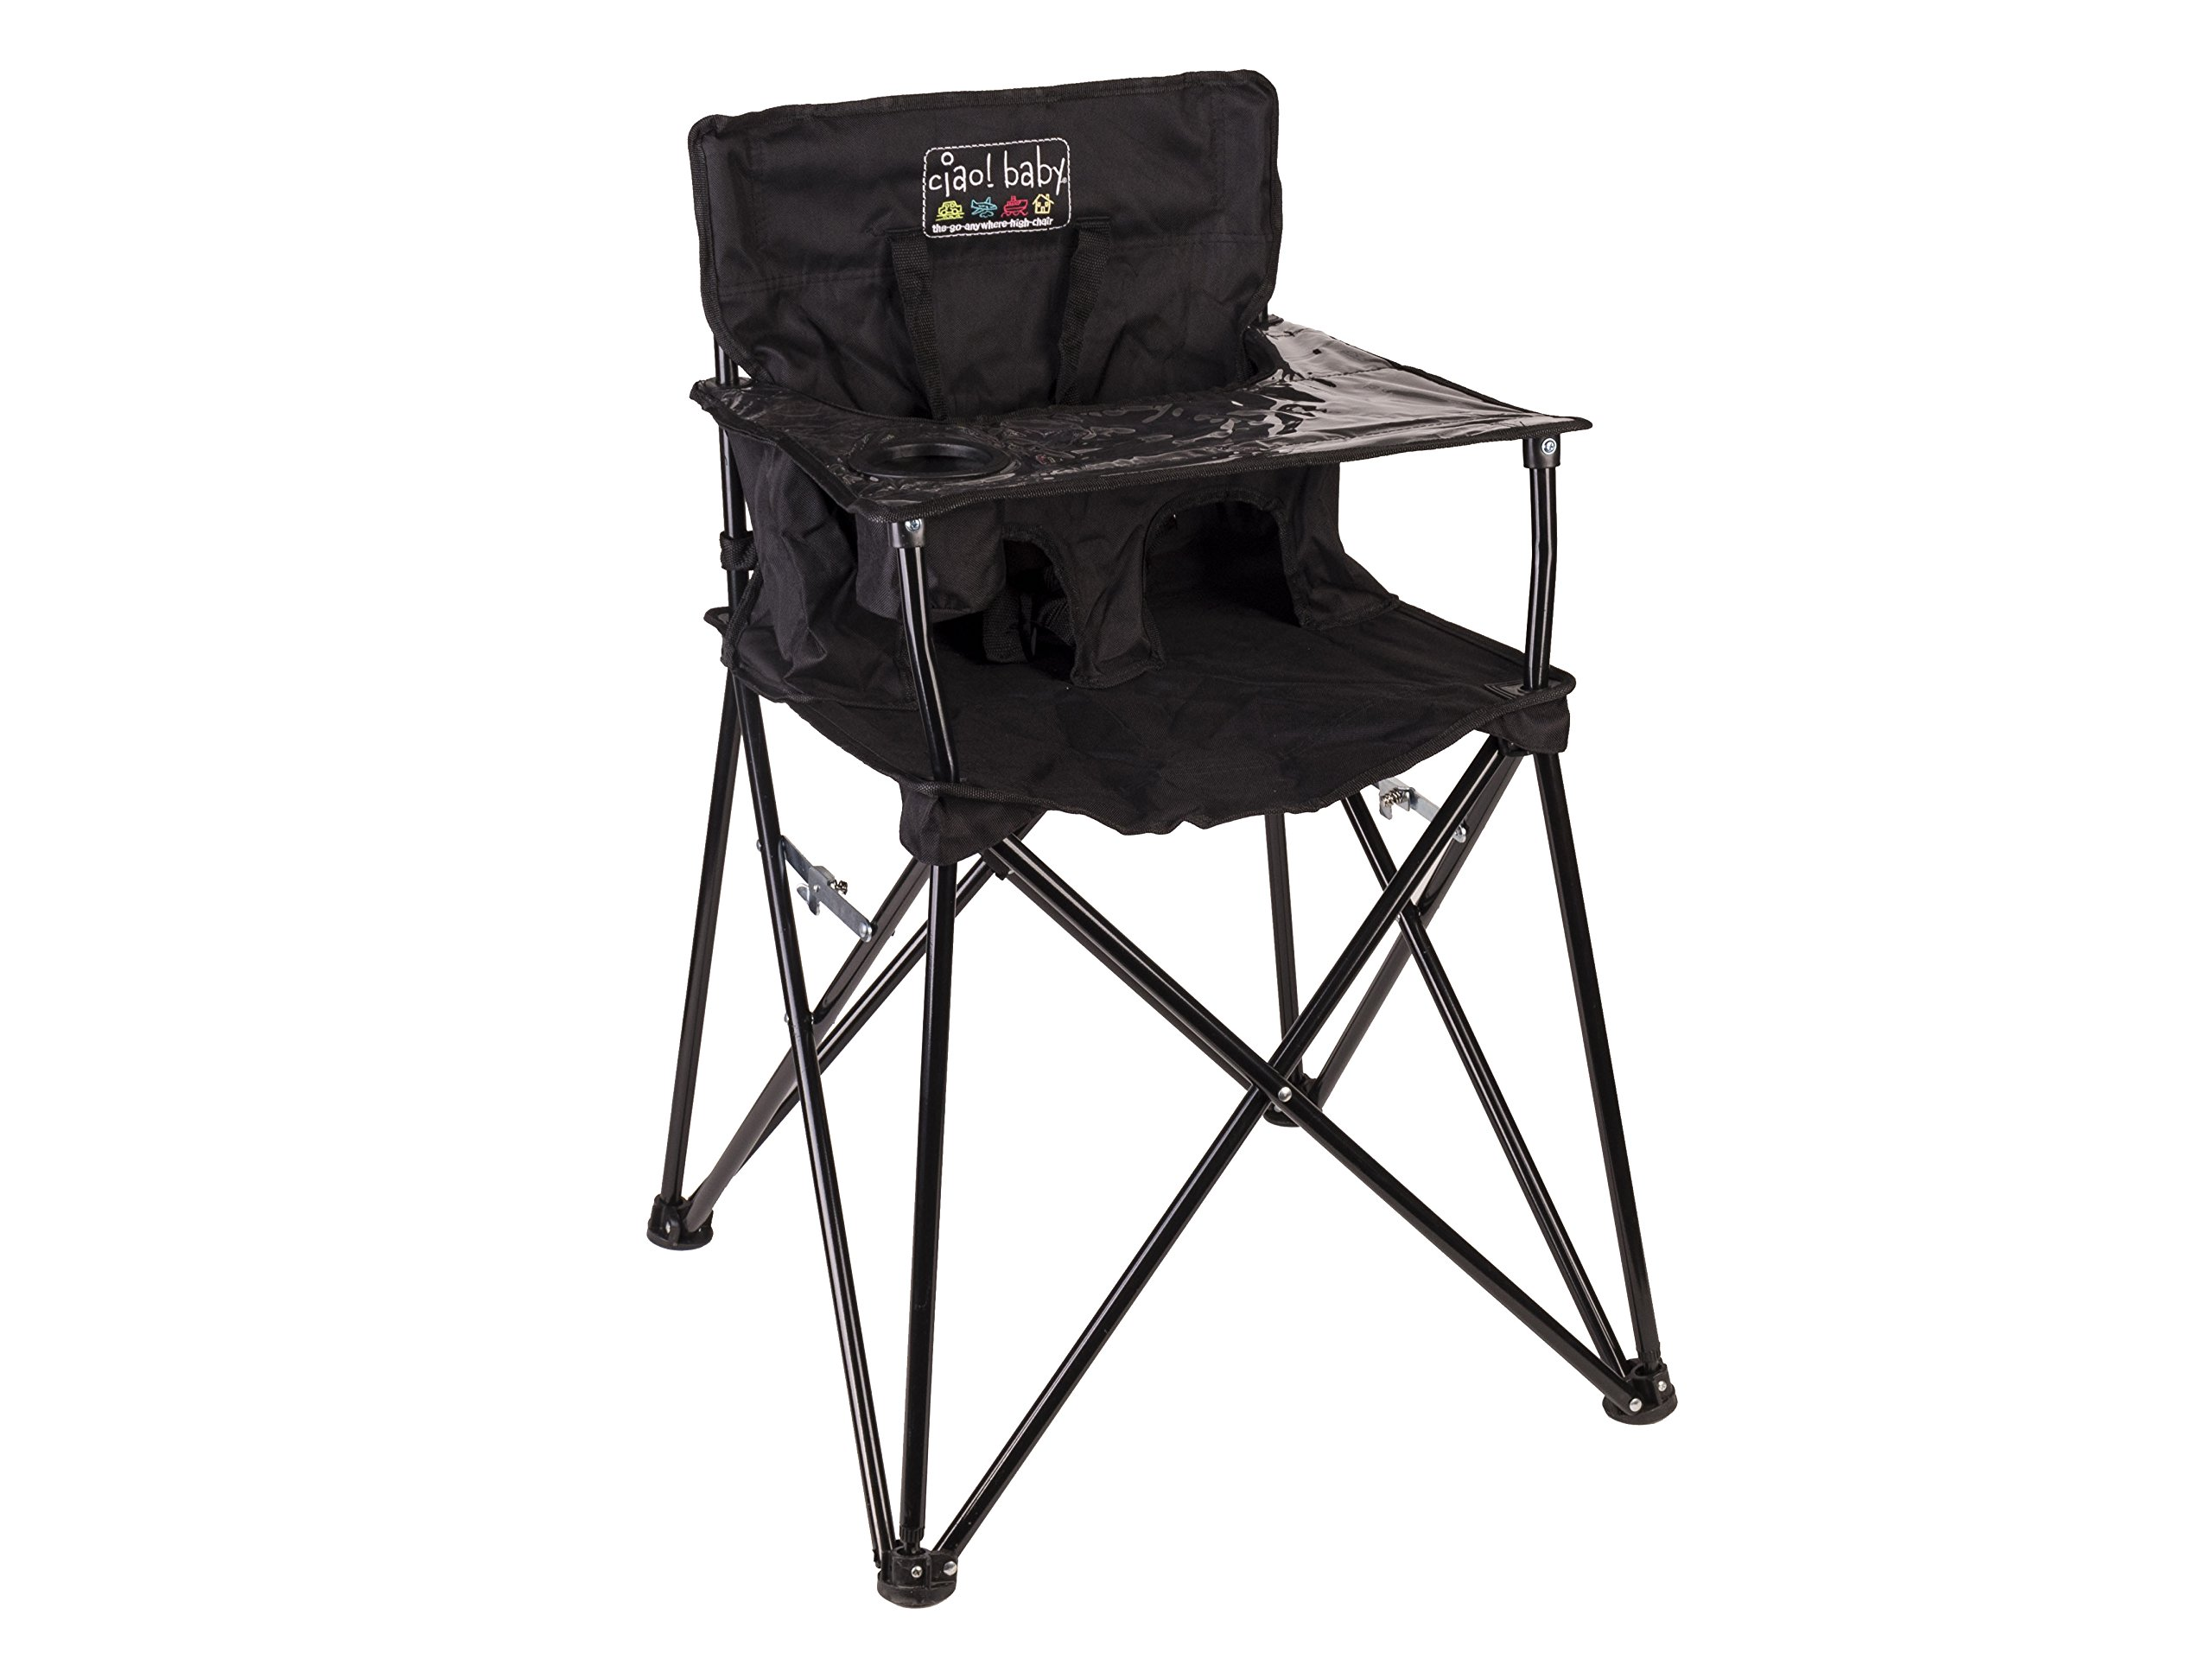 ciao! baby Portable High Chair for Travel, Fold Up High Chair with Tray, Black by ciao! baby